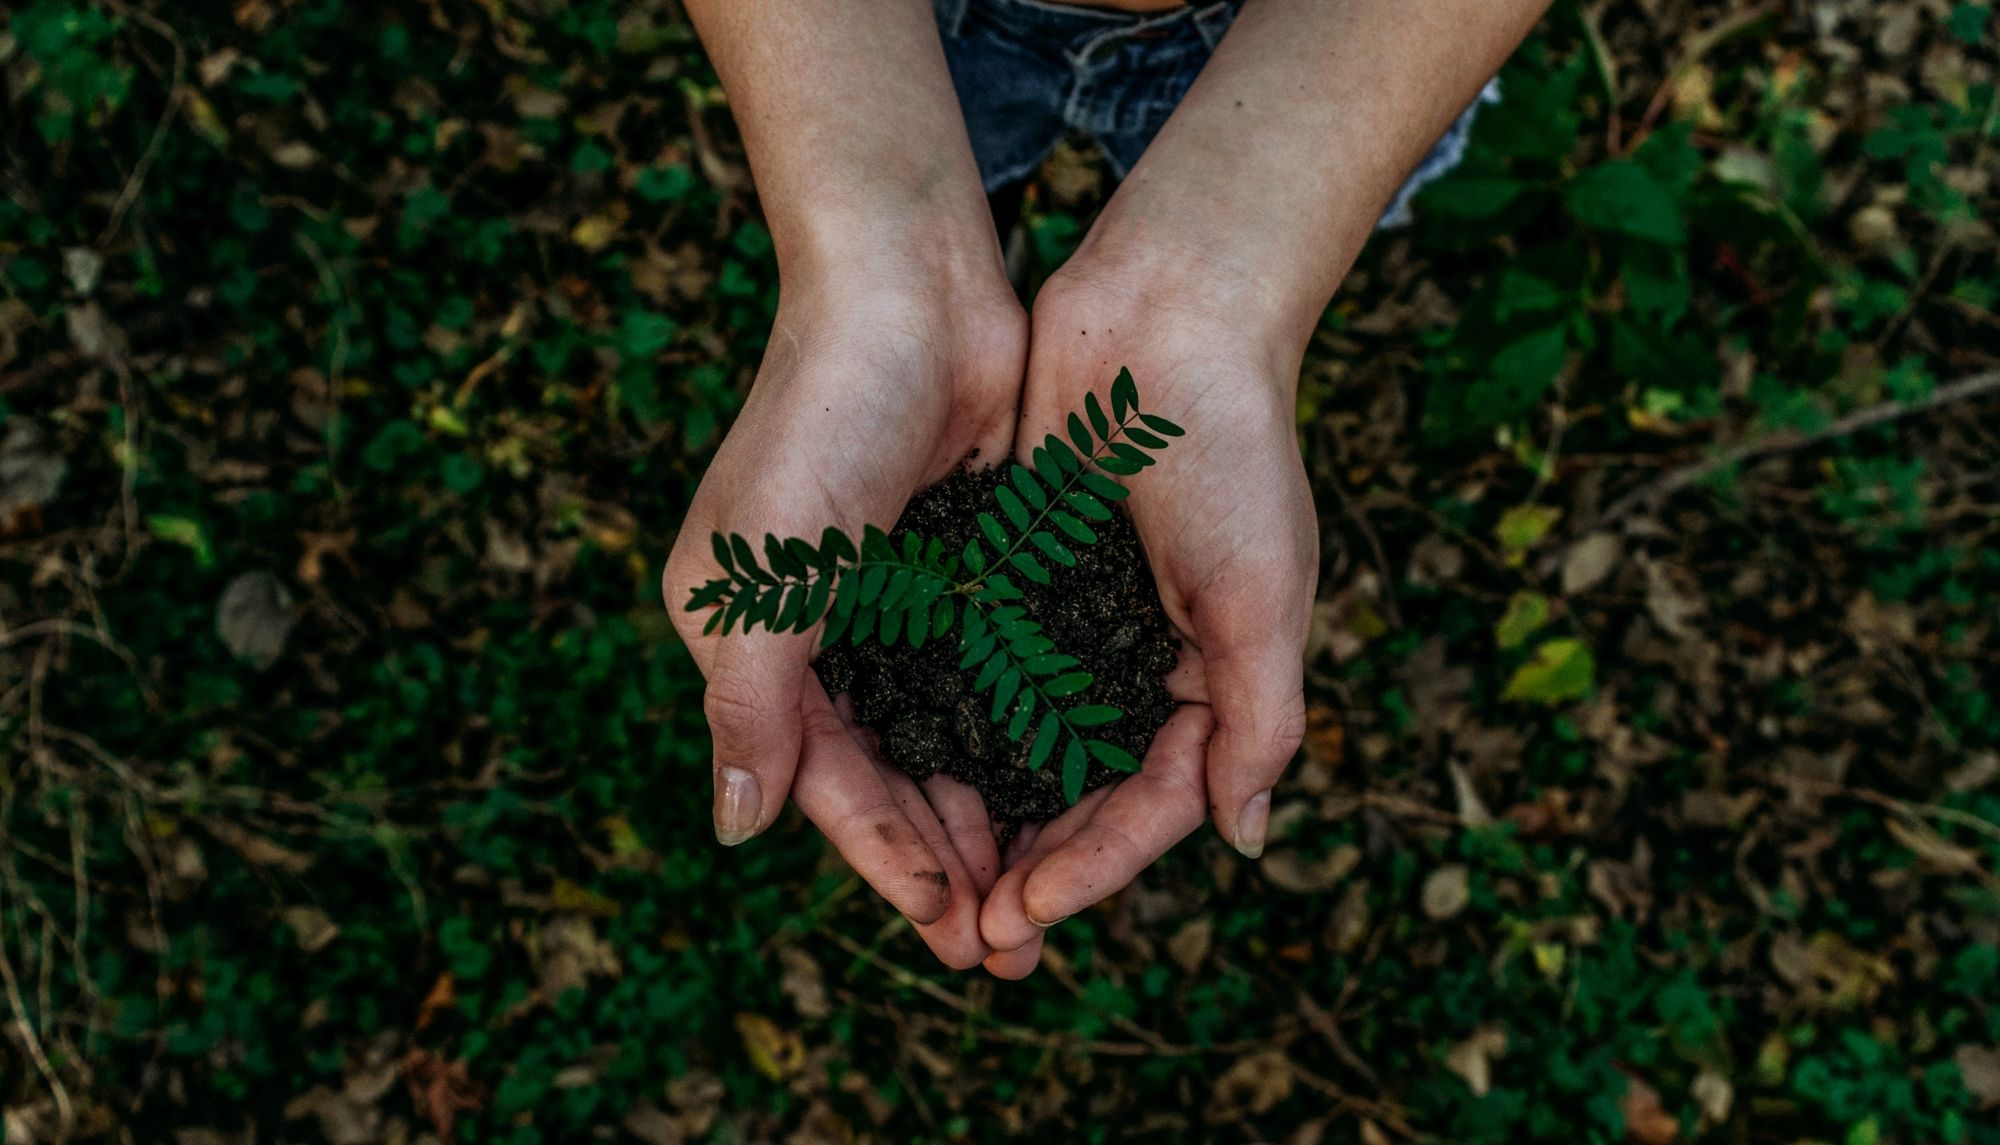 Tips on how to run your business more sustainably in a post-pandemic world